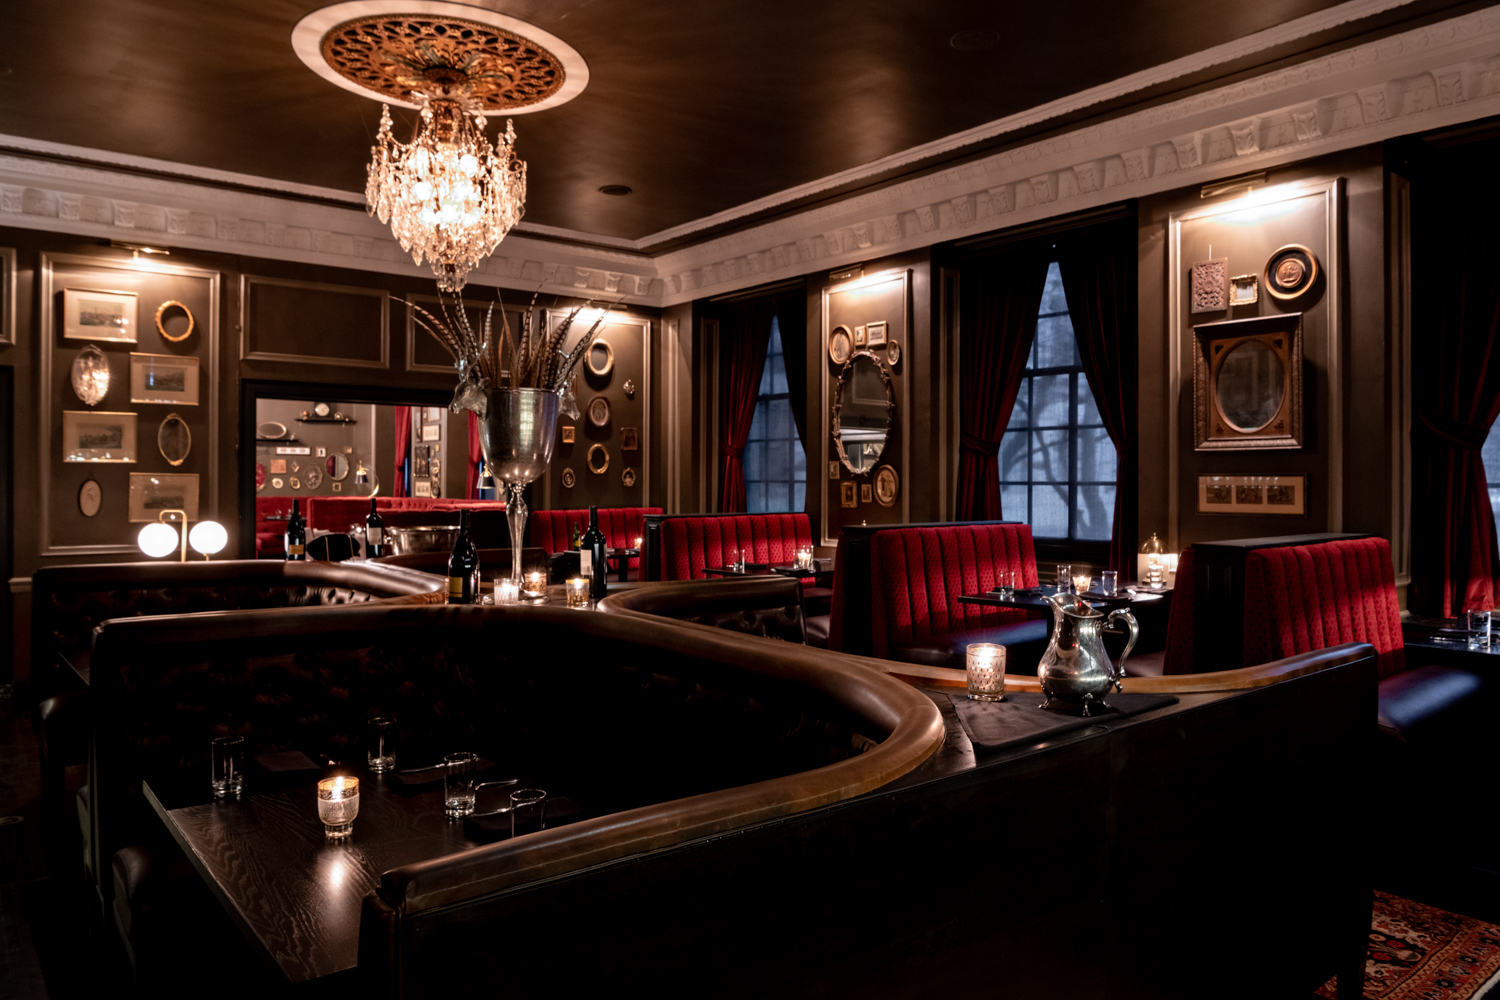 The dark dining room with a crystal chandelier, giant booths, with red velvet upholstery